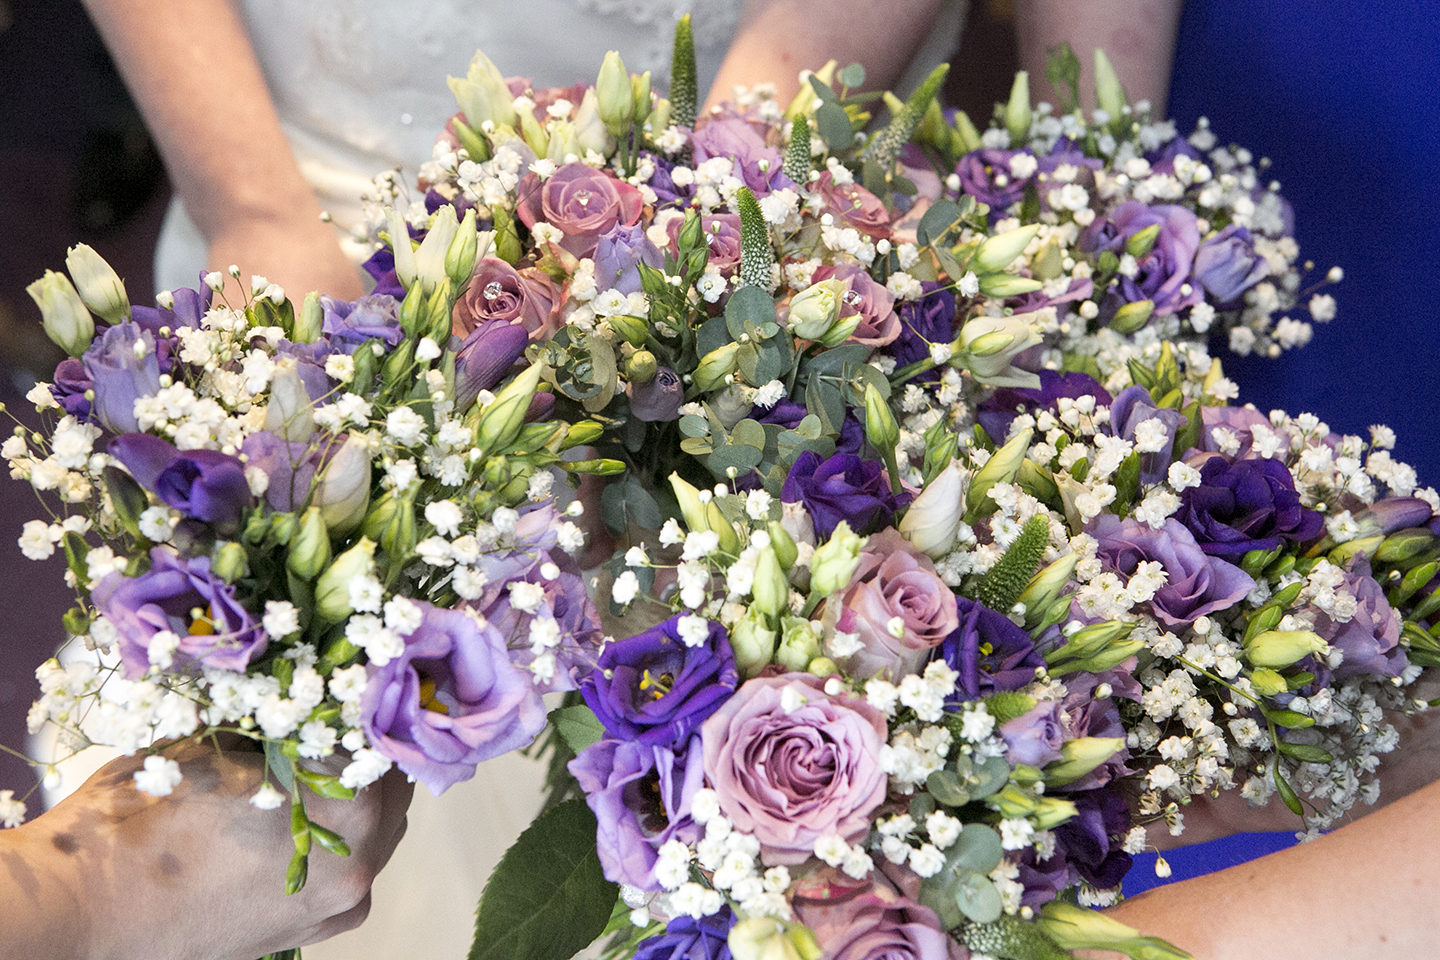 If you're looking for wedding ideas then floral decorations are just the thing for a wedding at Bassmead Manor Barns